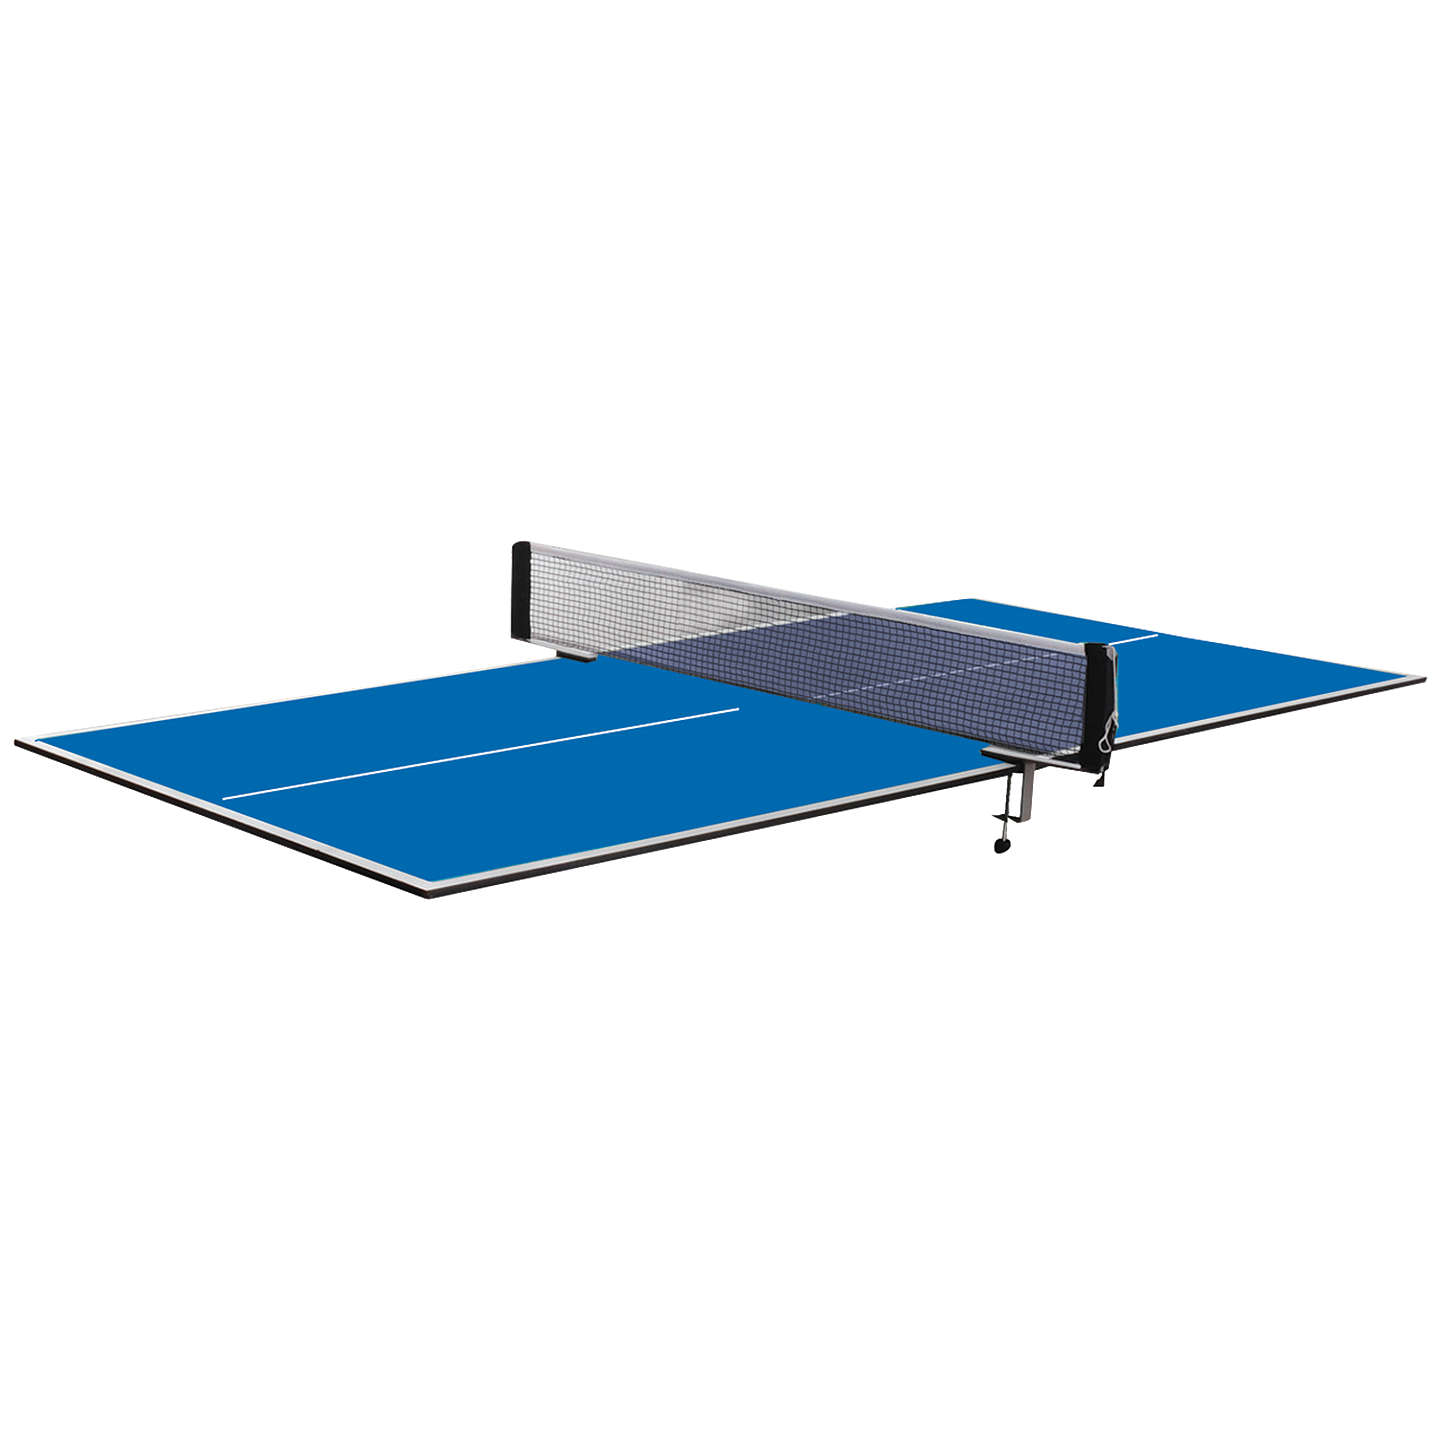 BuyButterfly Table Tennis Top, Blue Online at johnlewis.com